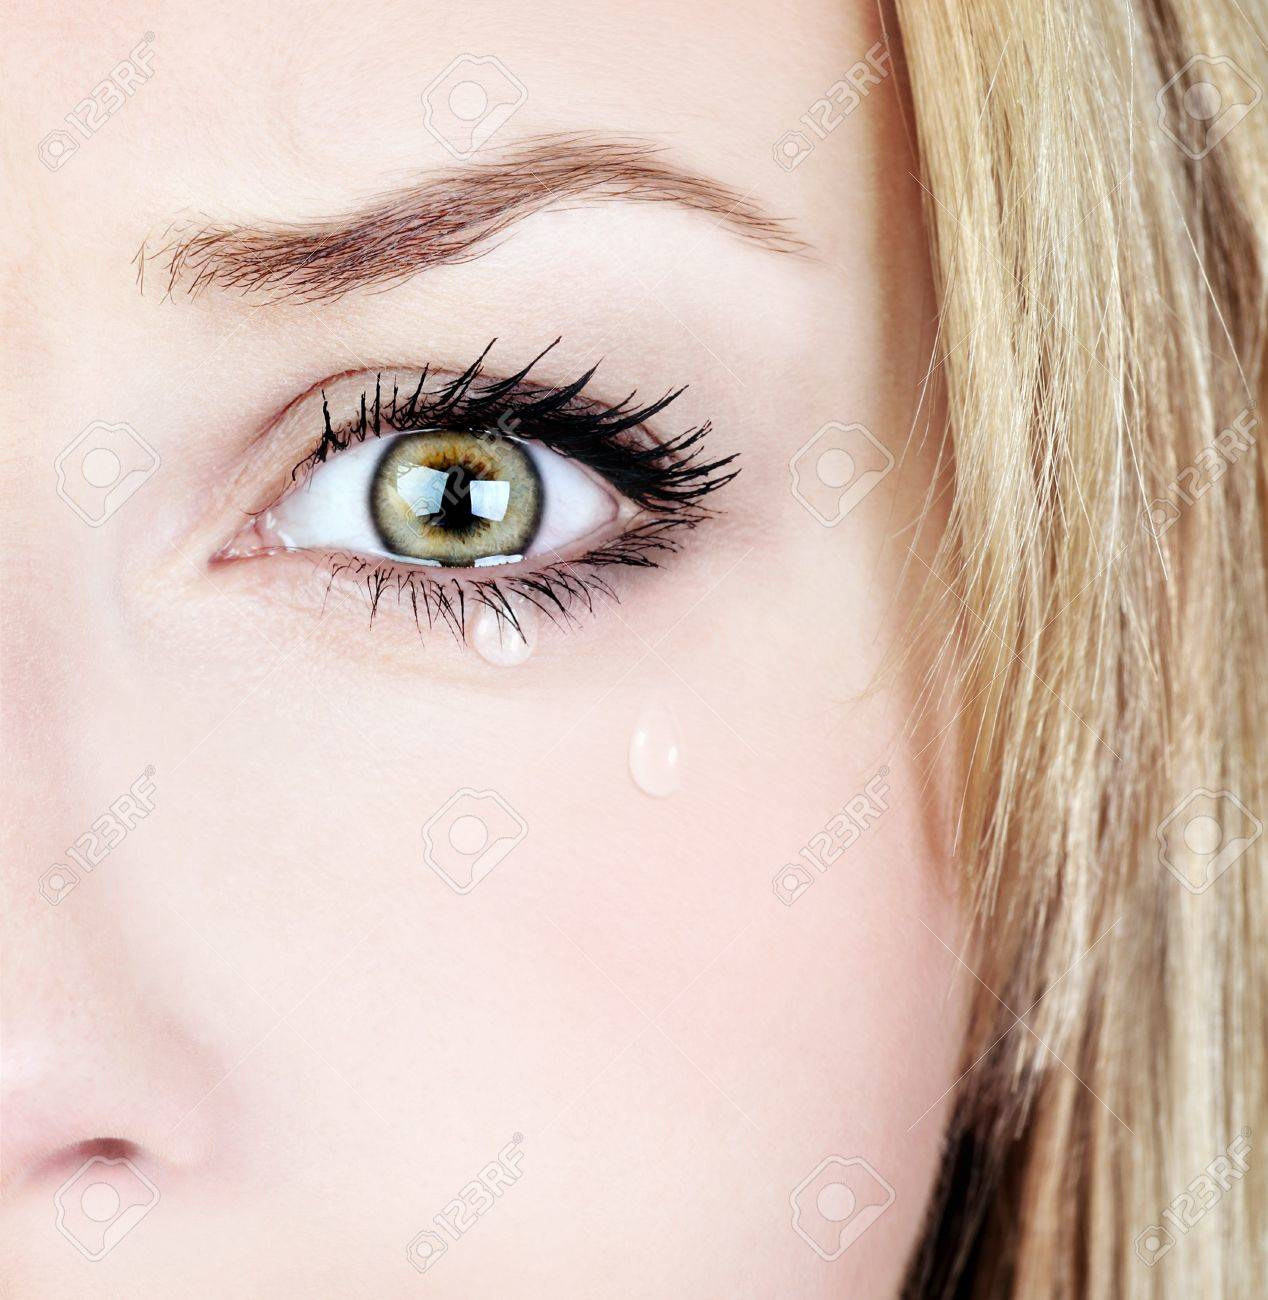 Crying woman, beautiful face with tear drops, facial expression, pain and grief concept Stock Photo - 9824573